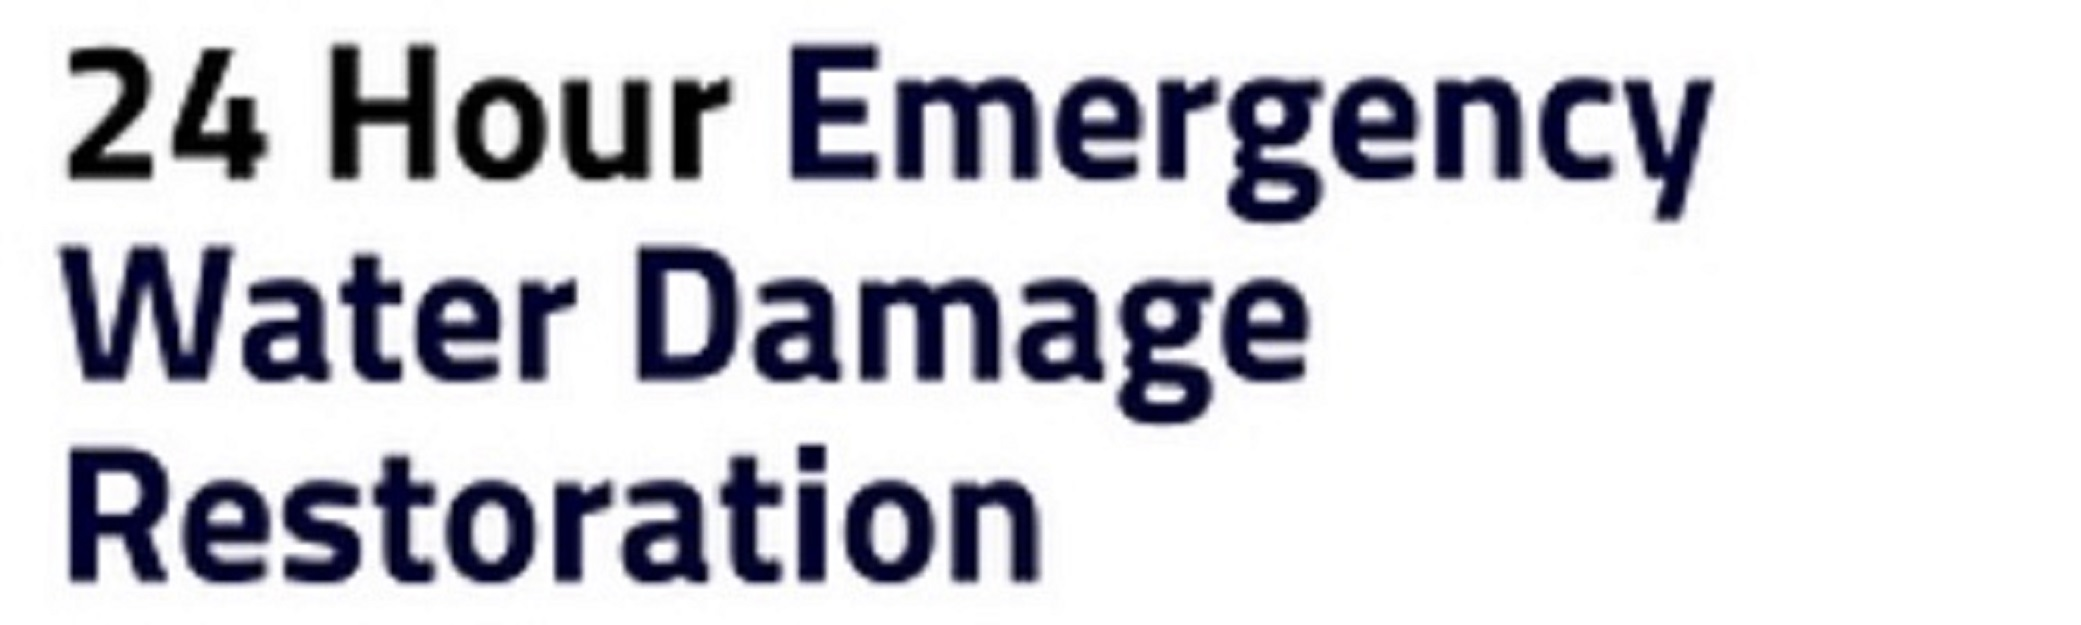 24 hour Water Damage Restoration Long Island